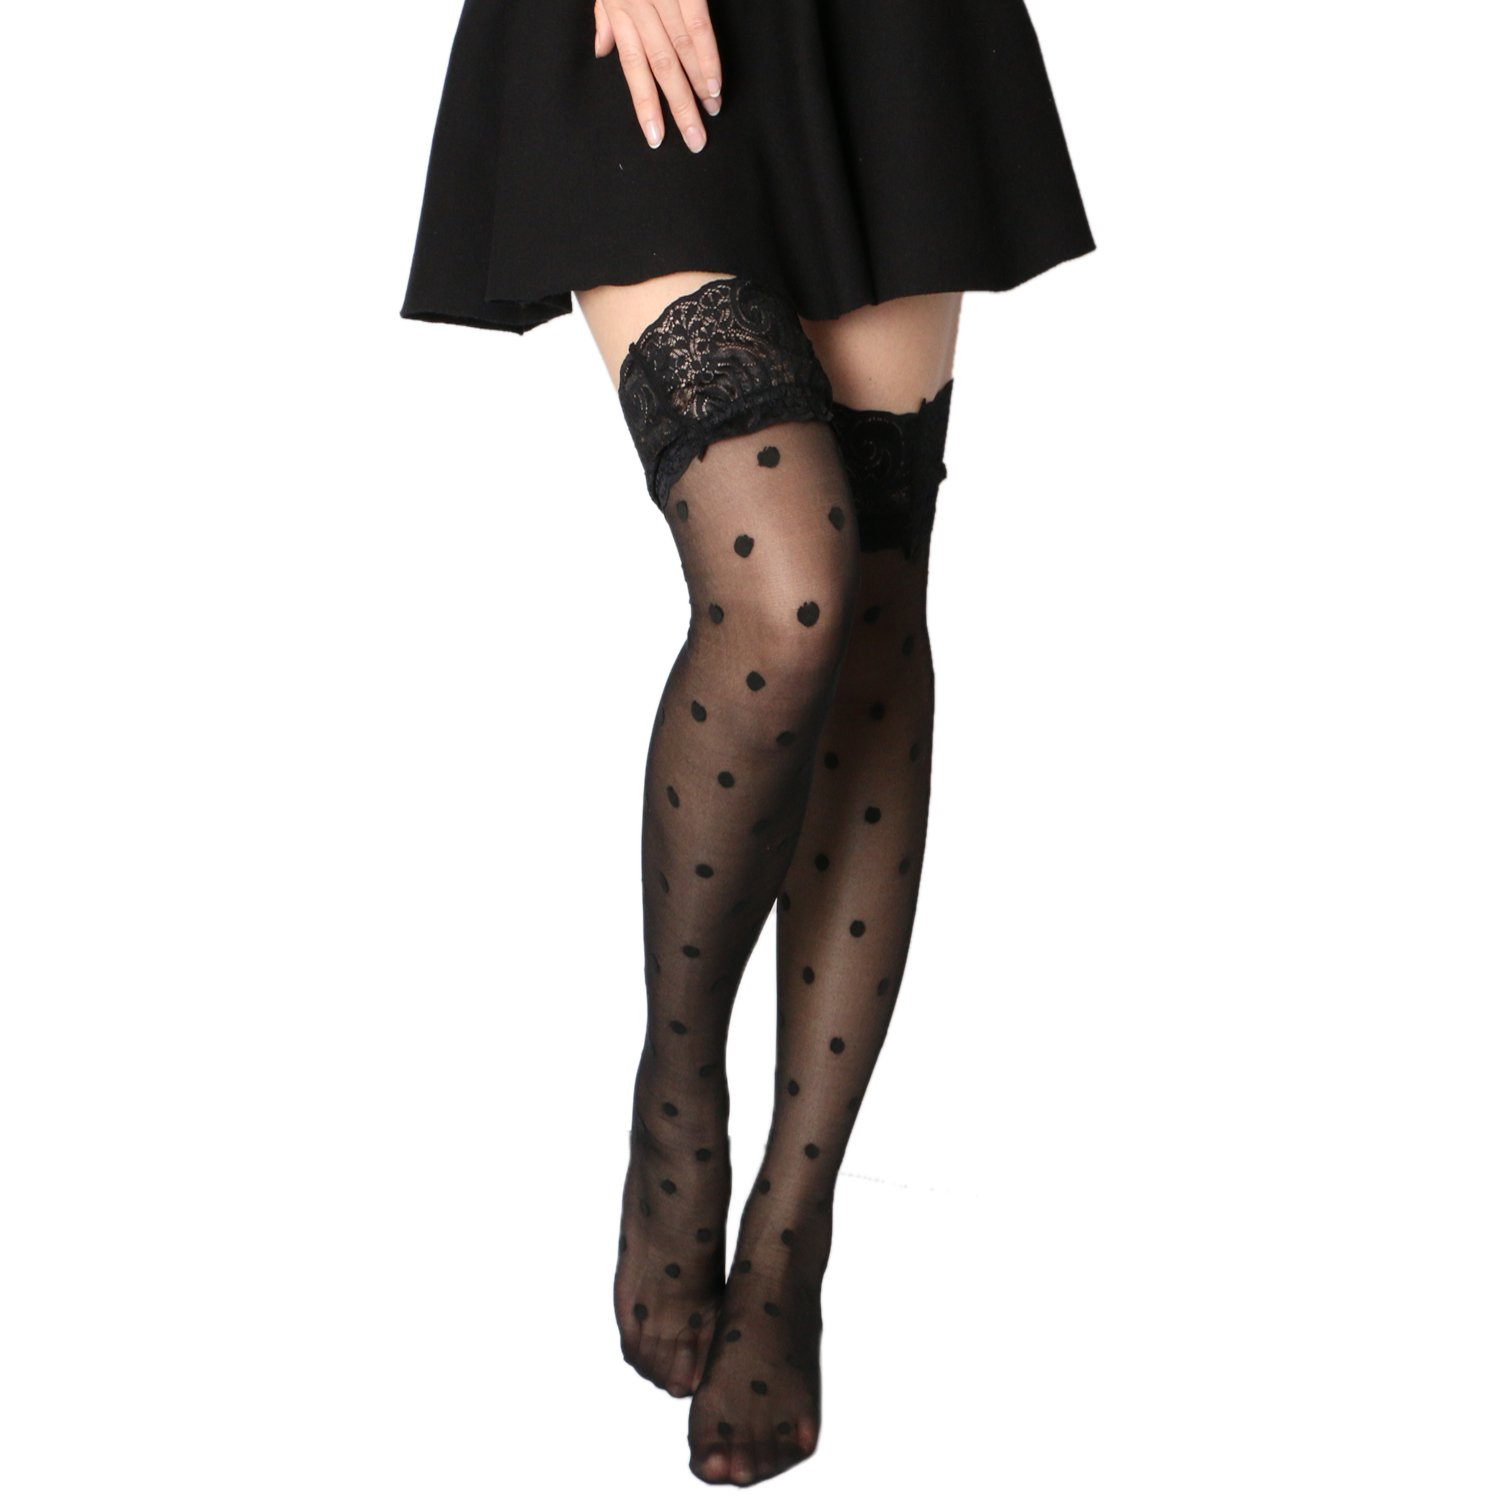 222eea25e Amazon.com  Tirain Sexy Womens Lace Top Silk Mesh Stockings Polka Dot  Fishnet Style Thigh High  Clothing